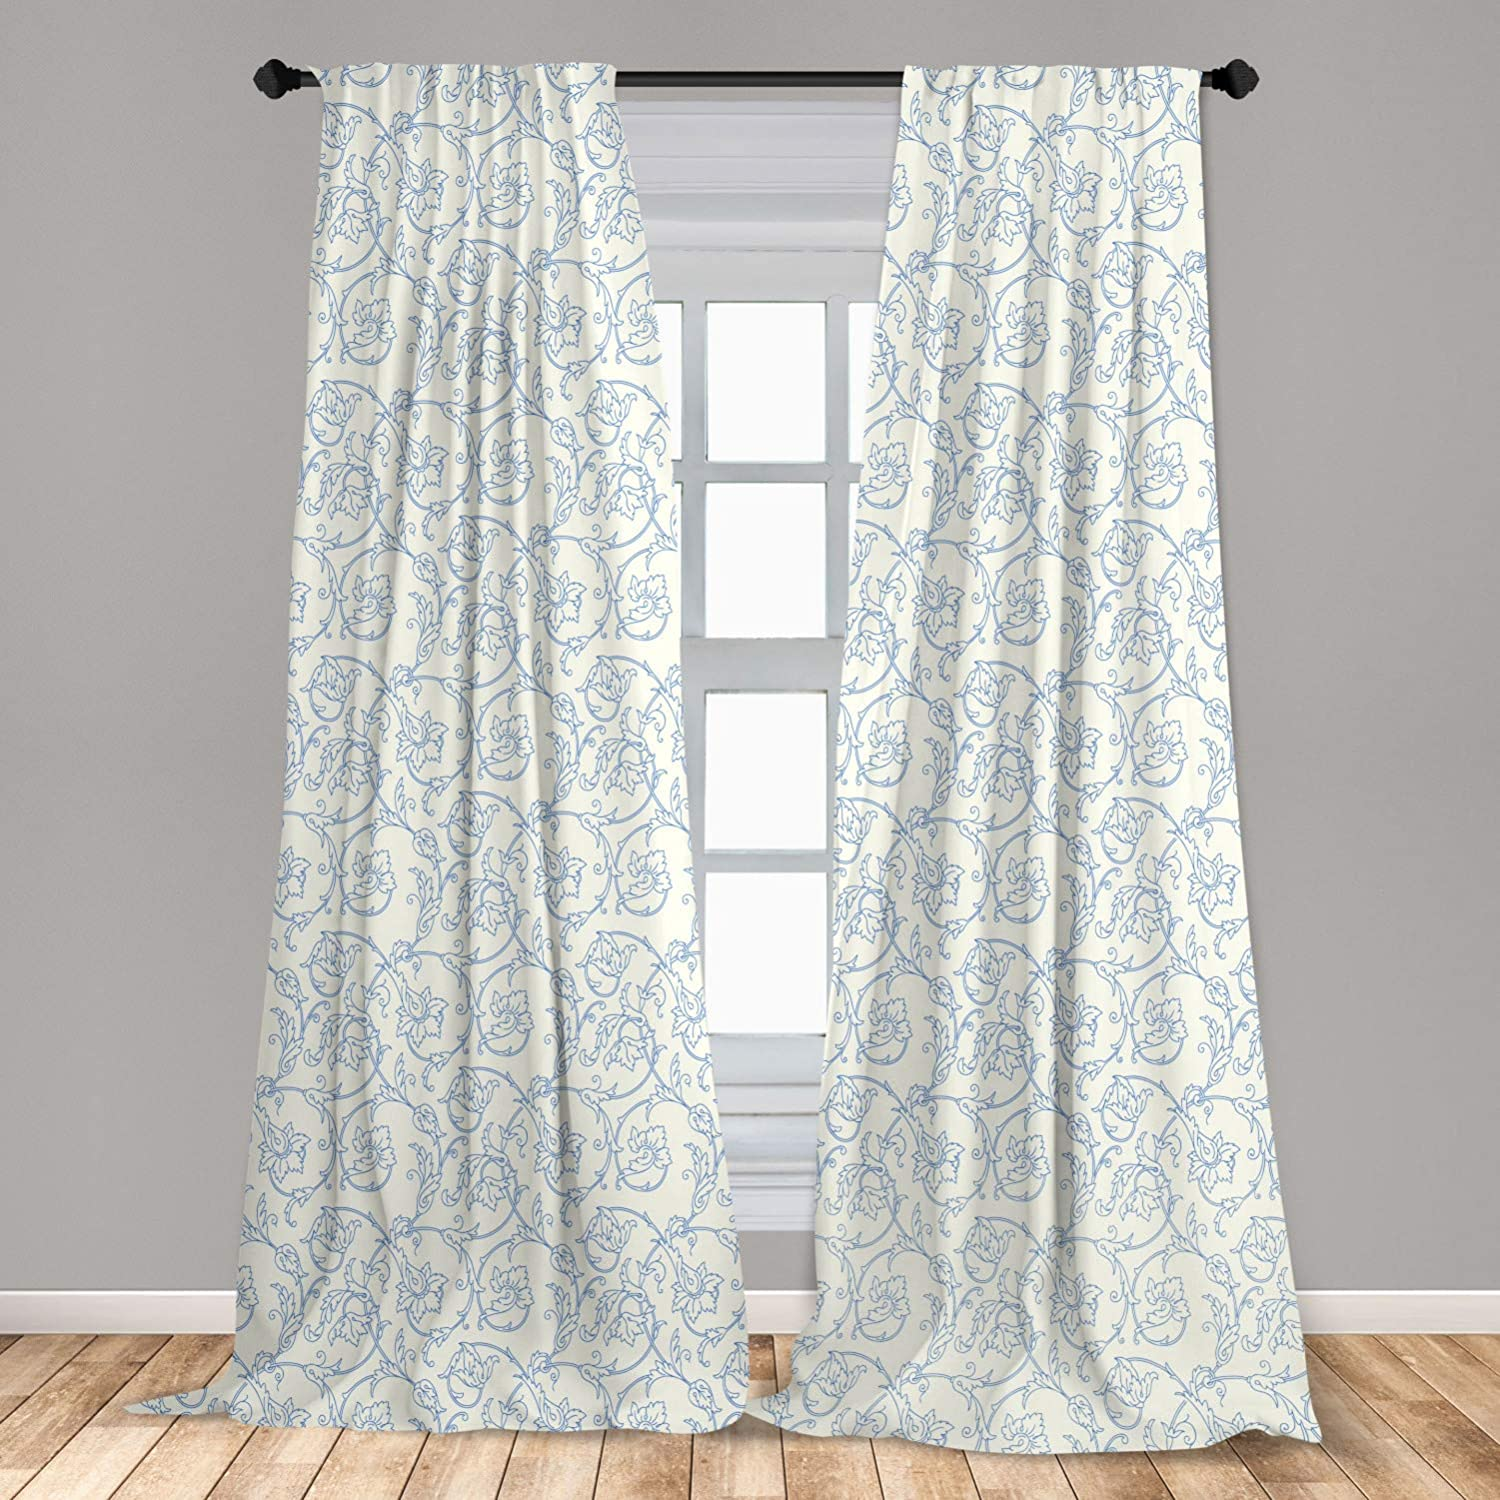 """Ambesonne Floral Curtains, Flower Orchids Bohemian Style Vintage Petals Vines Pattern French Country Style, Window Treatments 2 Panel Set for Living Room Bedroom Decor, 56"""" x 95"""", White Blue"""